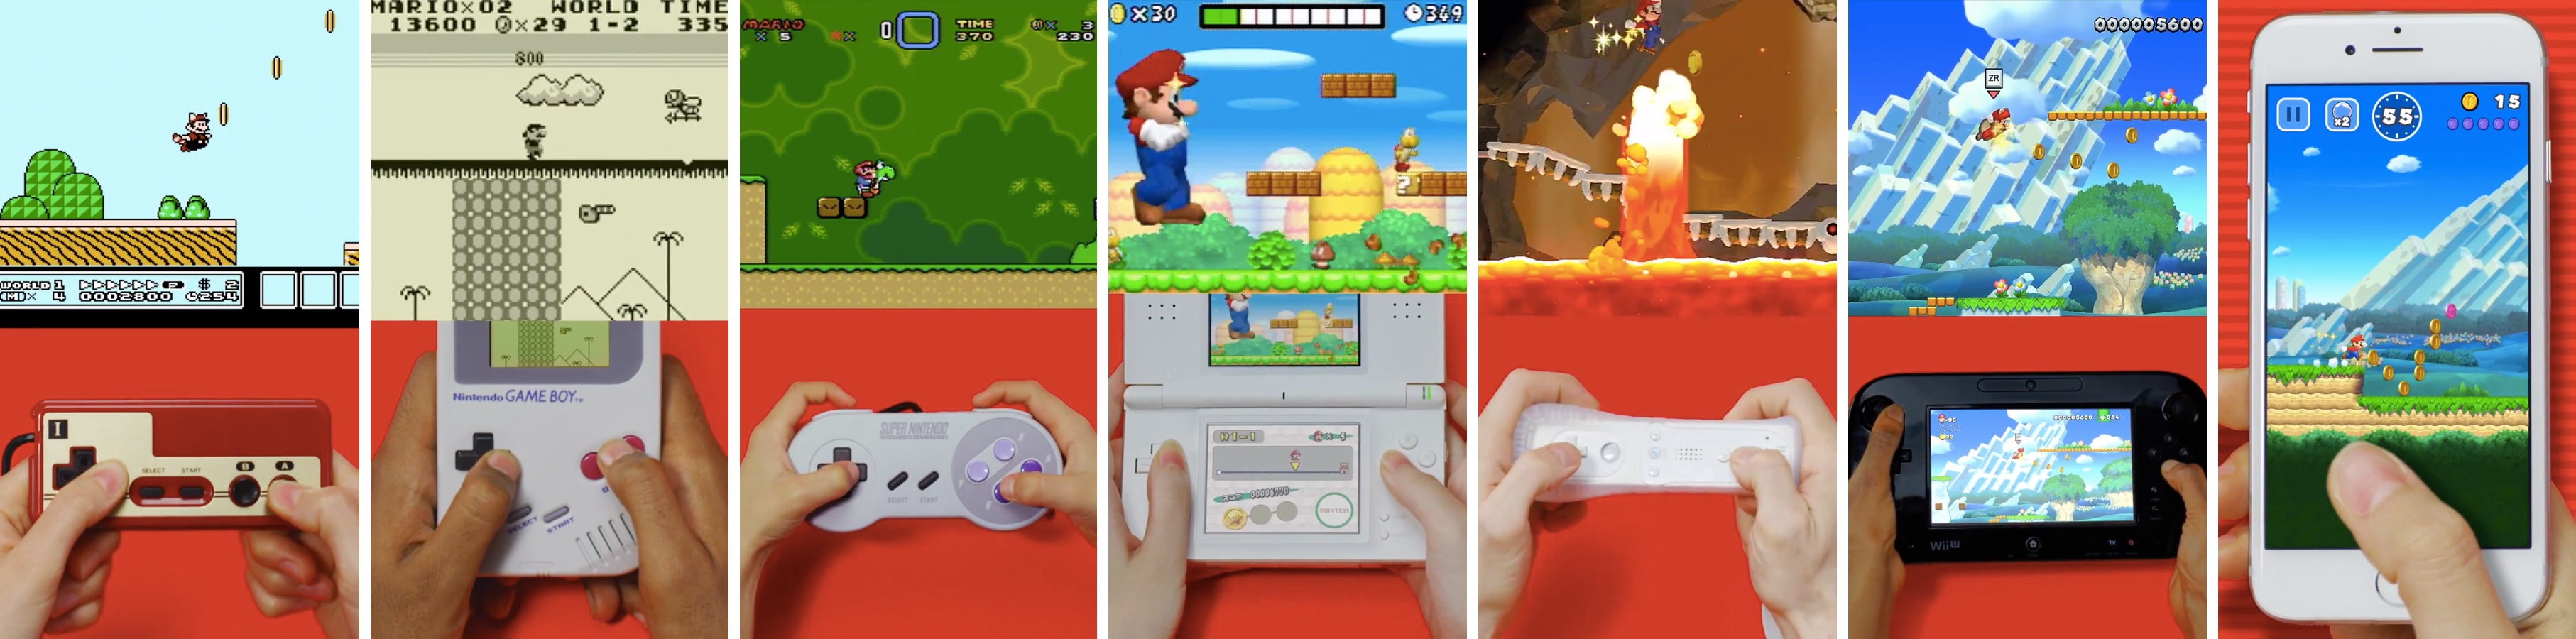 Nintendo video Super Mario over the years